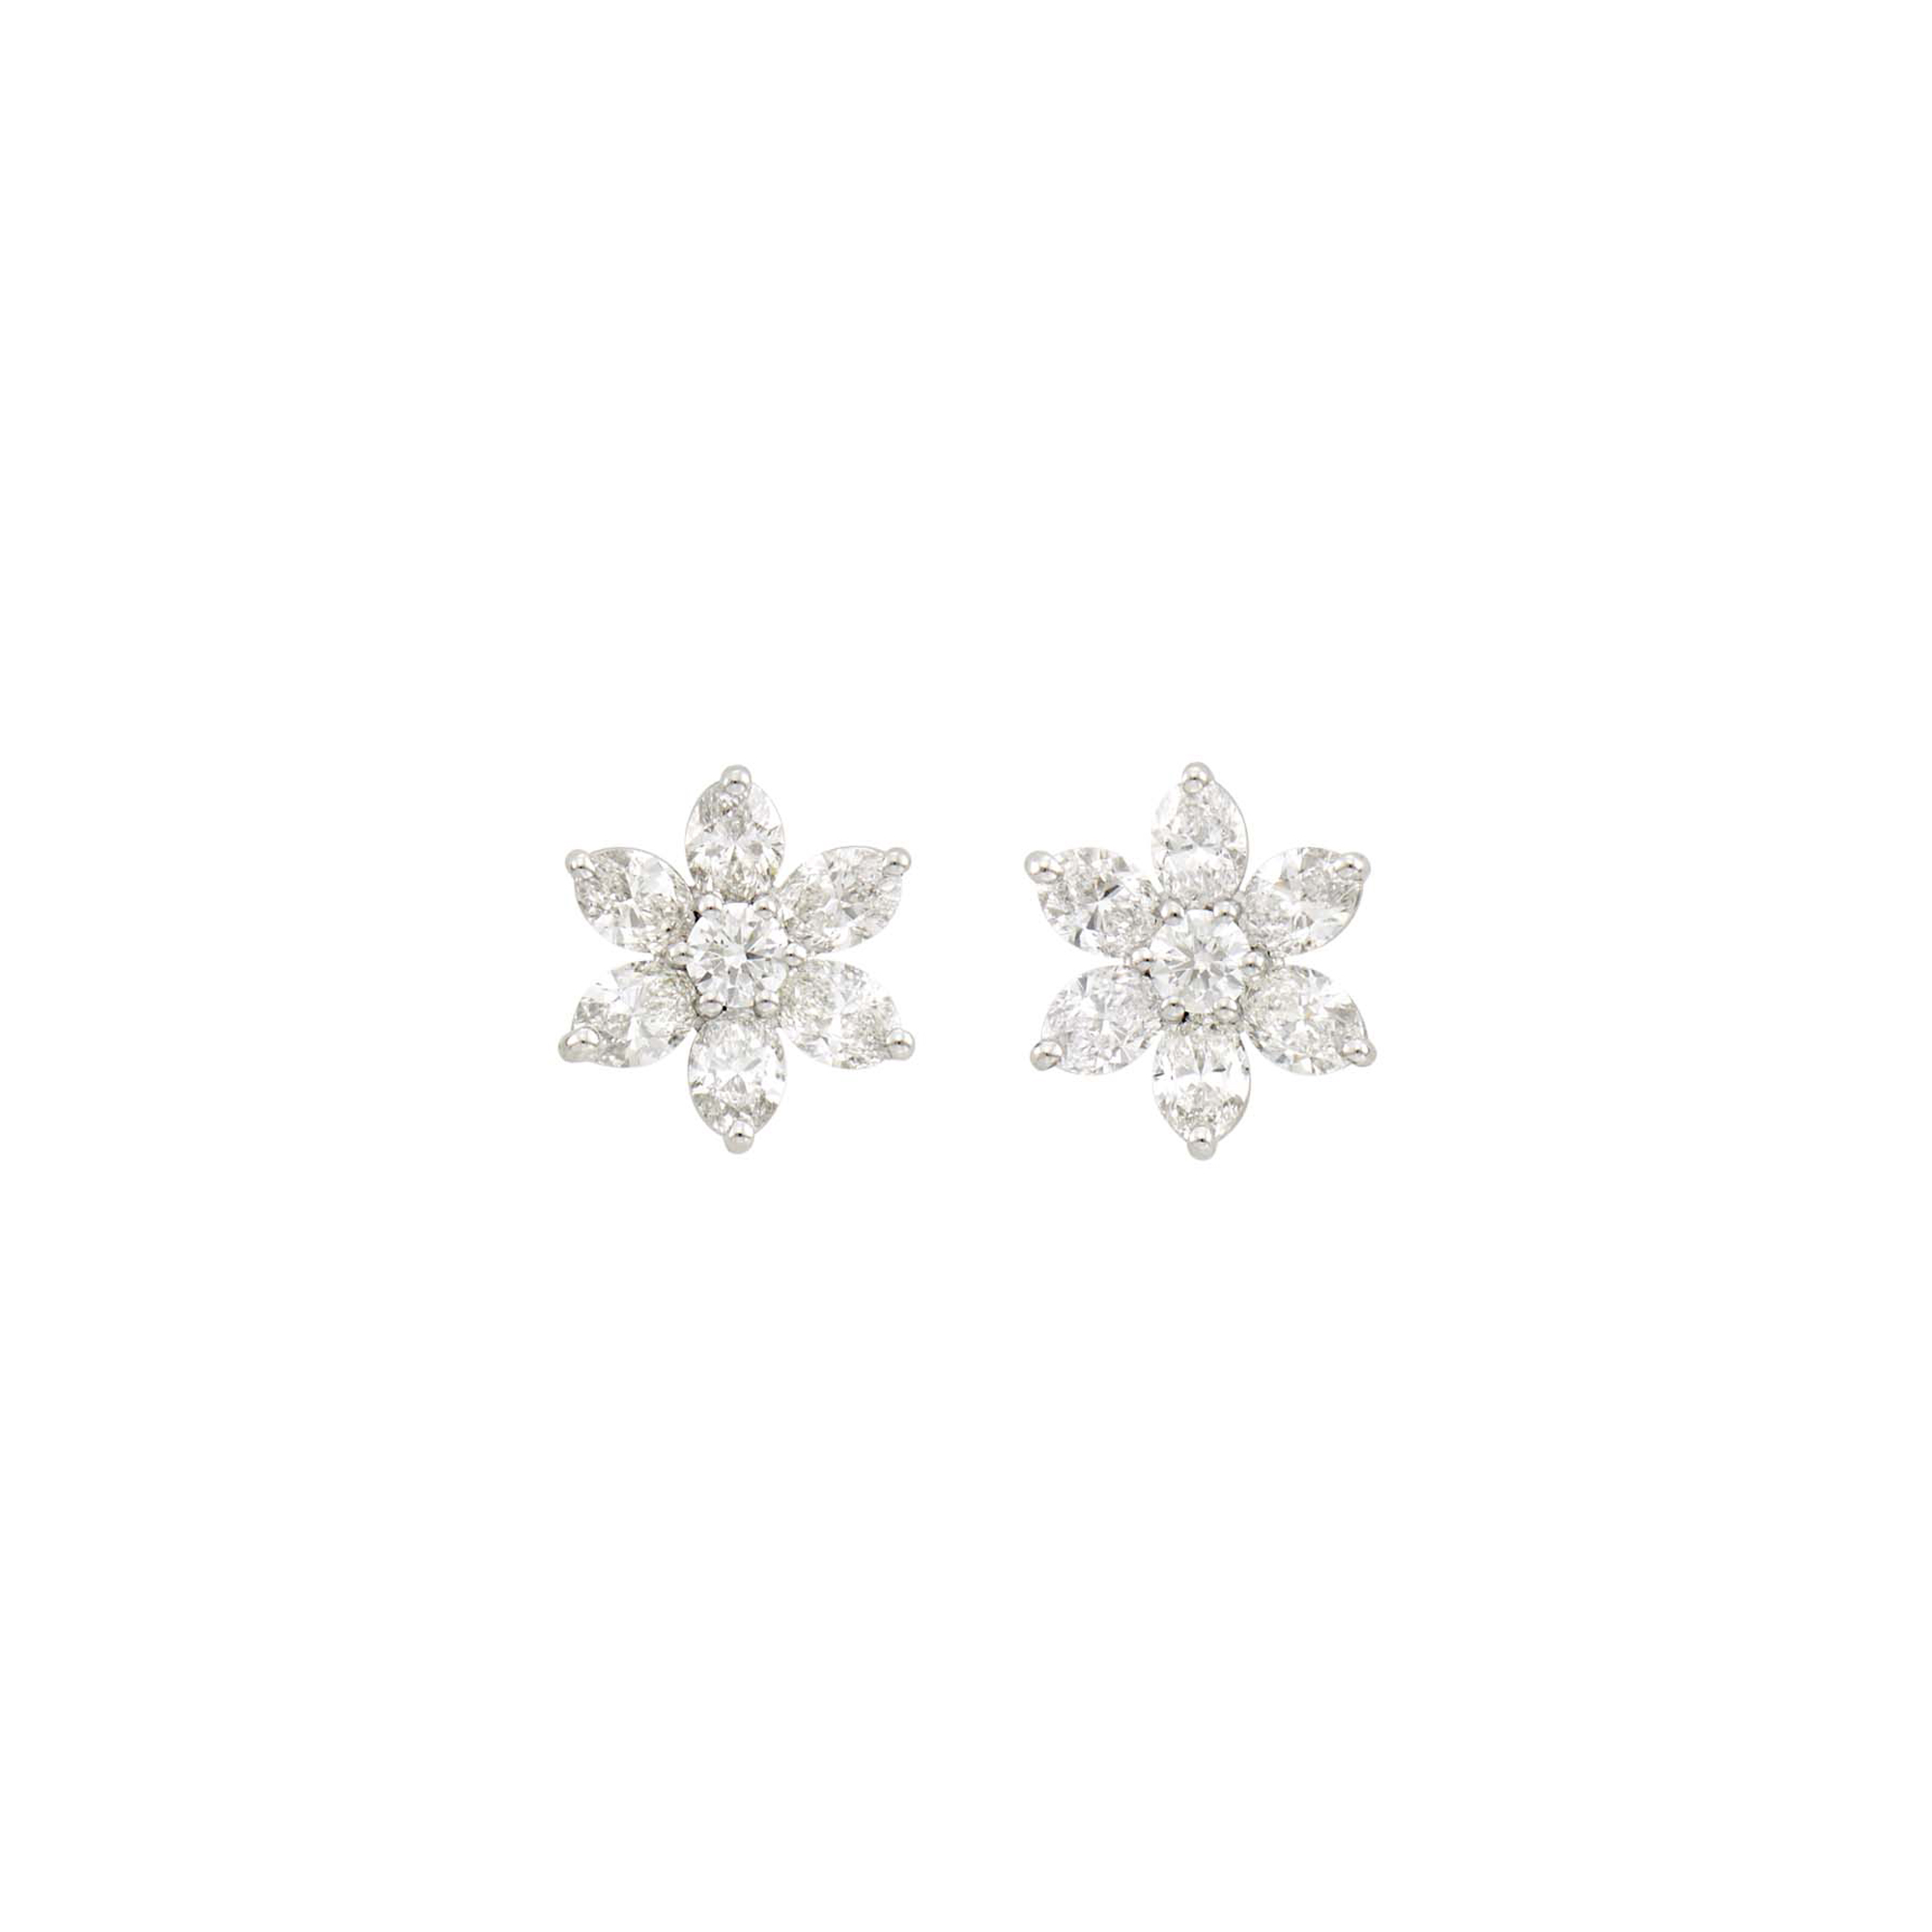 Lot image - Pair of Platinum and Diamond Earrings